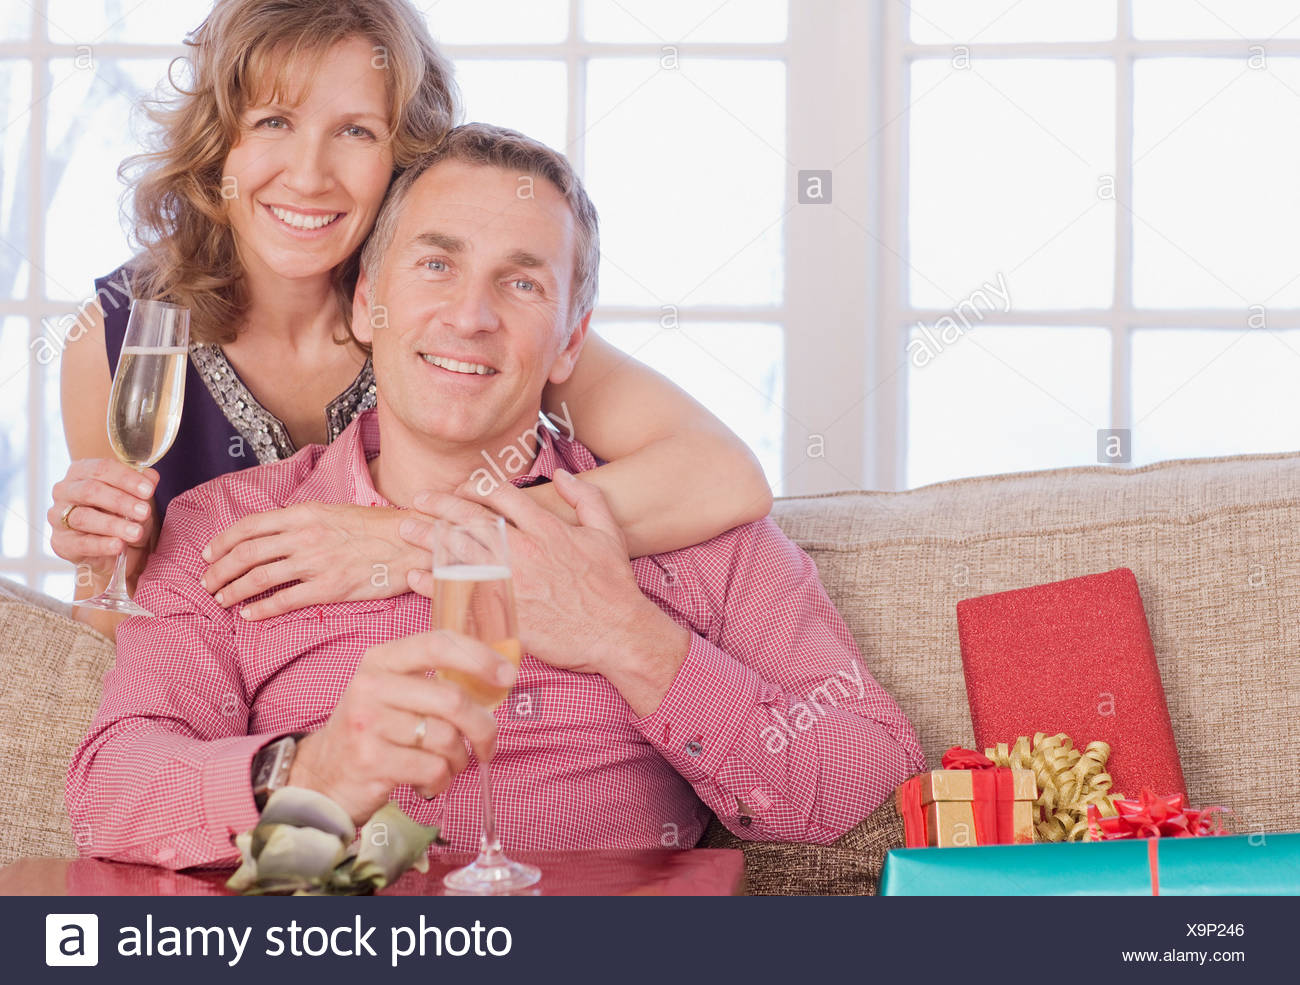 Couple drinking champagne near Christmas gifts Stock Photo